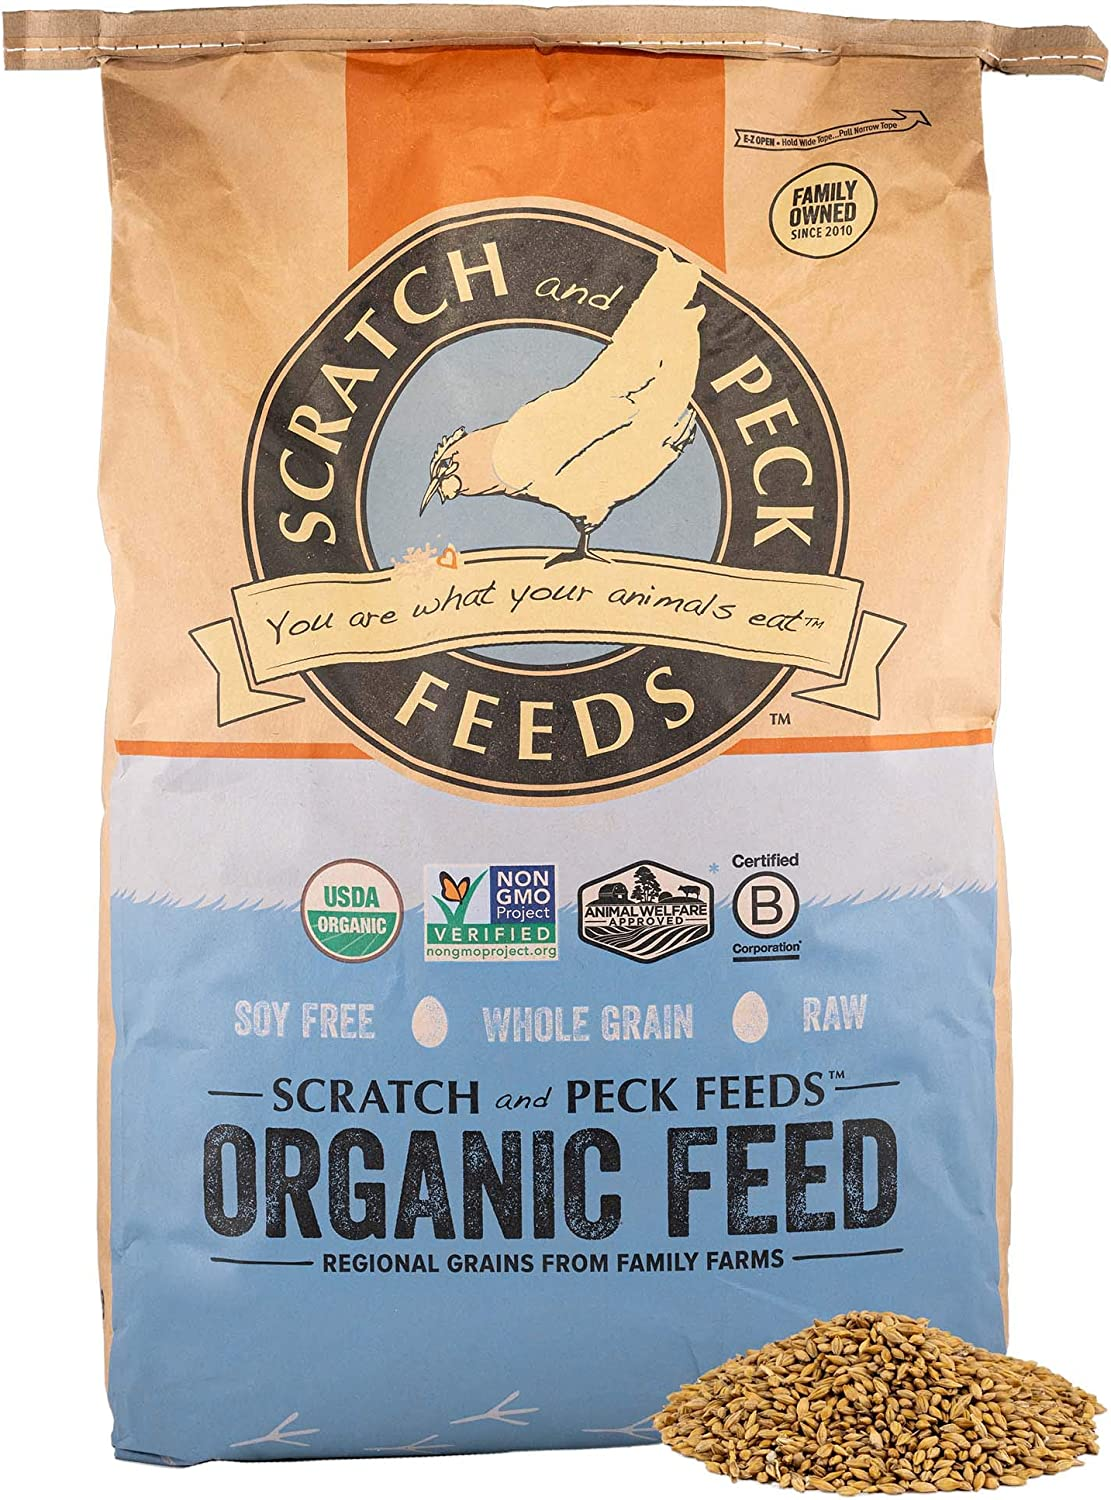 Scratch and Peck Feeds Cluckin' Good Organic Sprouting Barley Treat Supplement - 40-lbs - Soy Free, Whole Grain, Raw - 8300-40